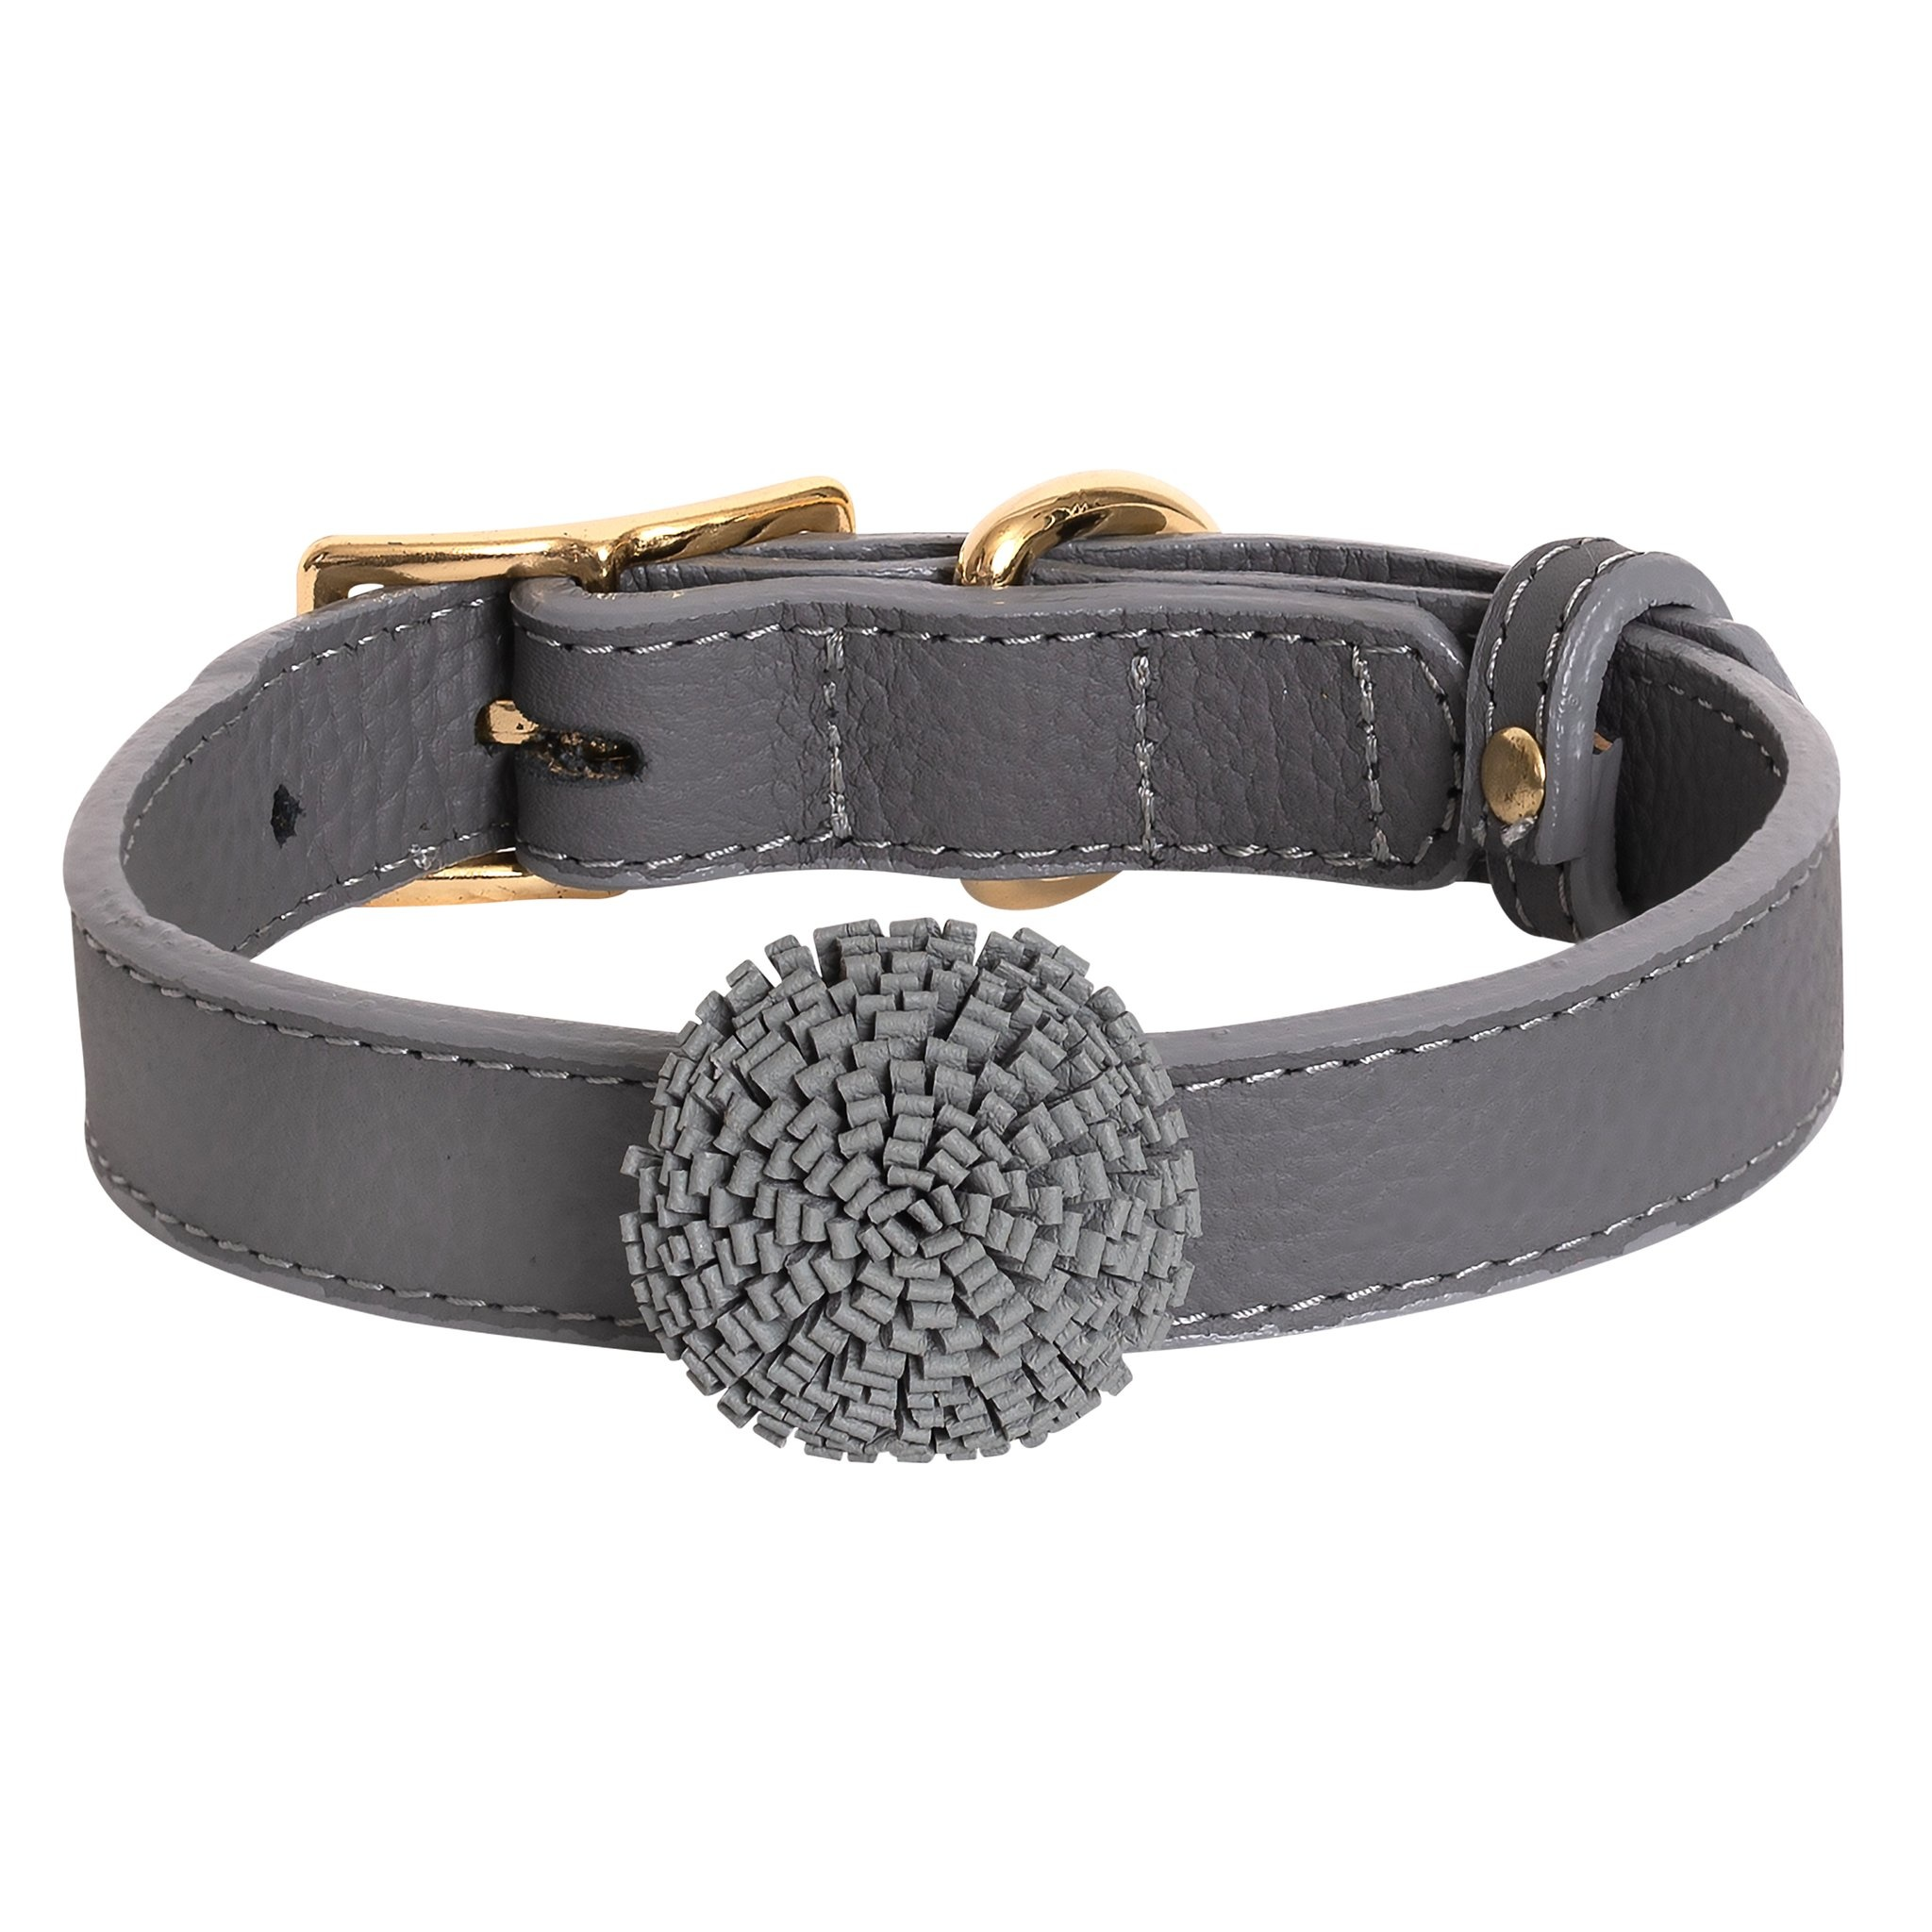 Poise Pup Collar Artisan Full Bloom Leather Gray